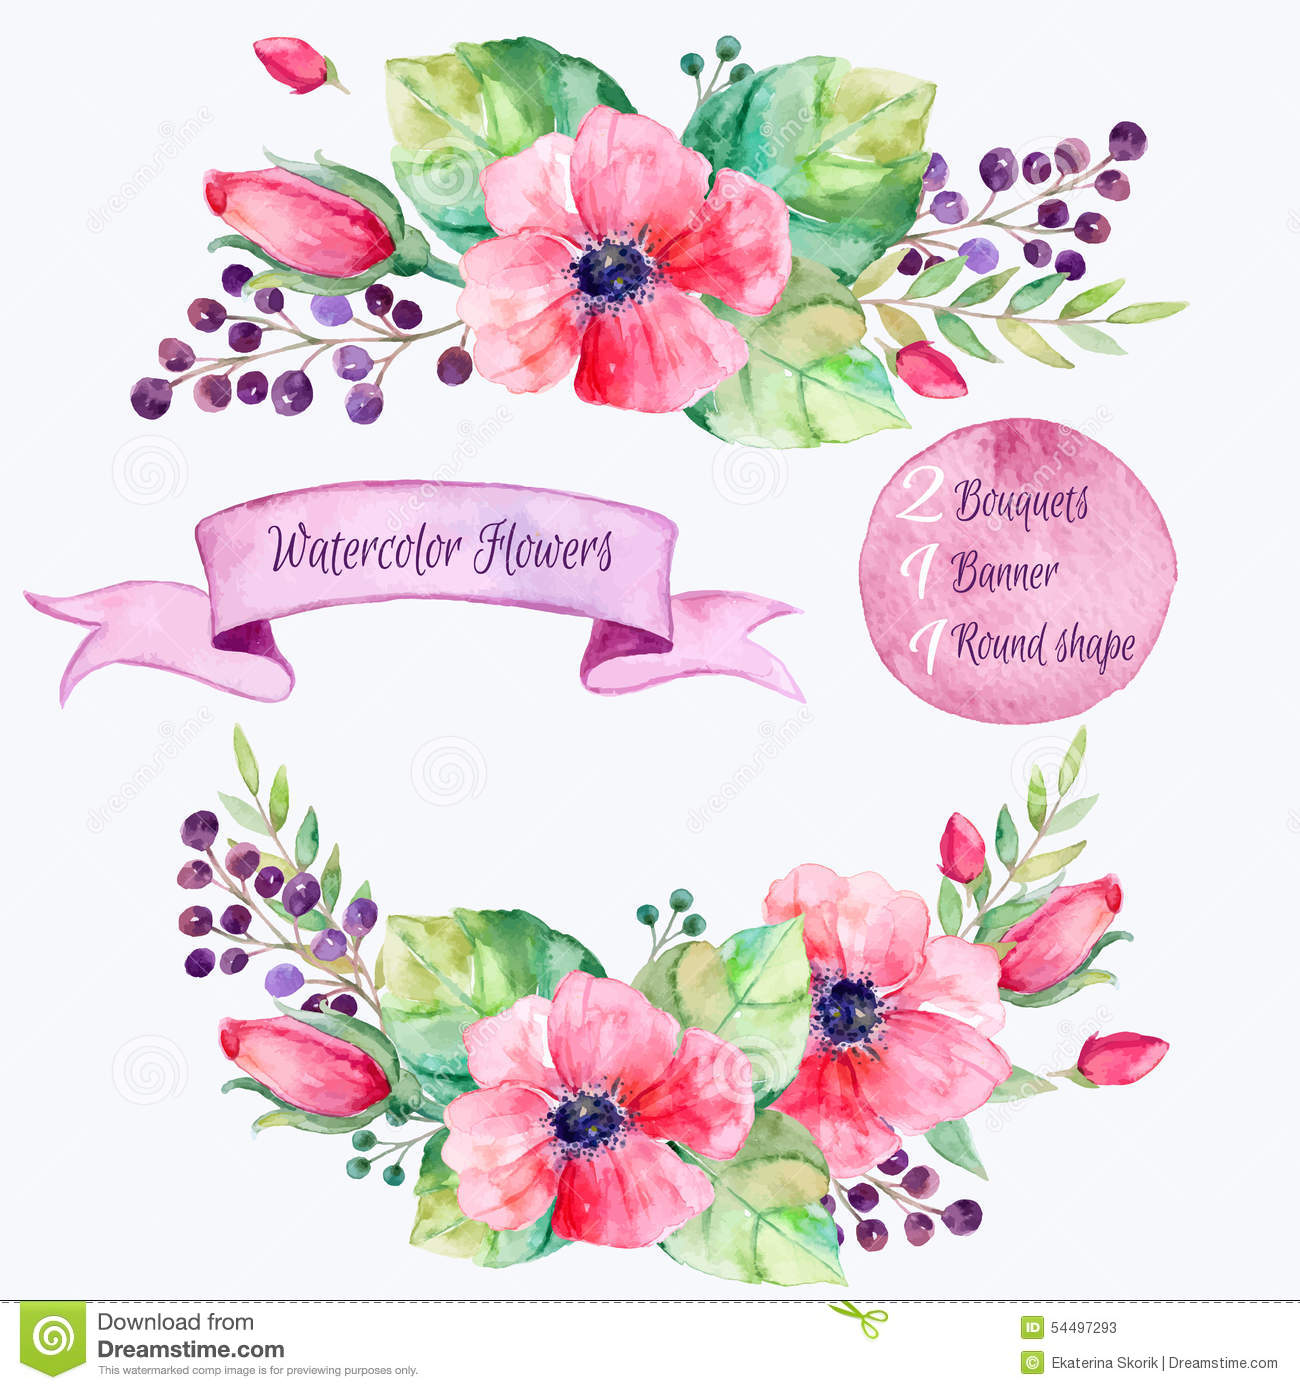 Download Vector Flowers Set.Colorful Floral Collection With Leaves And Flowers,drawing Watercolor. Stock Vector - Illustration of botanical, background: 54497293